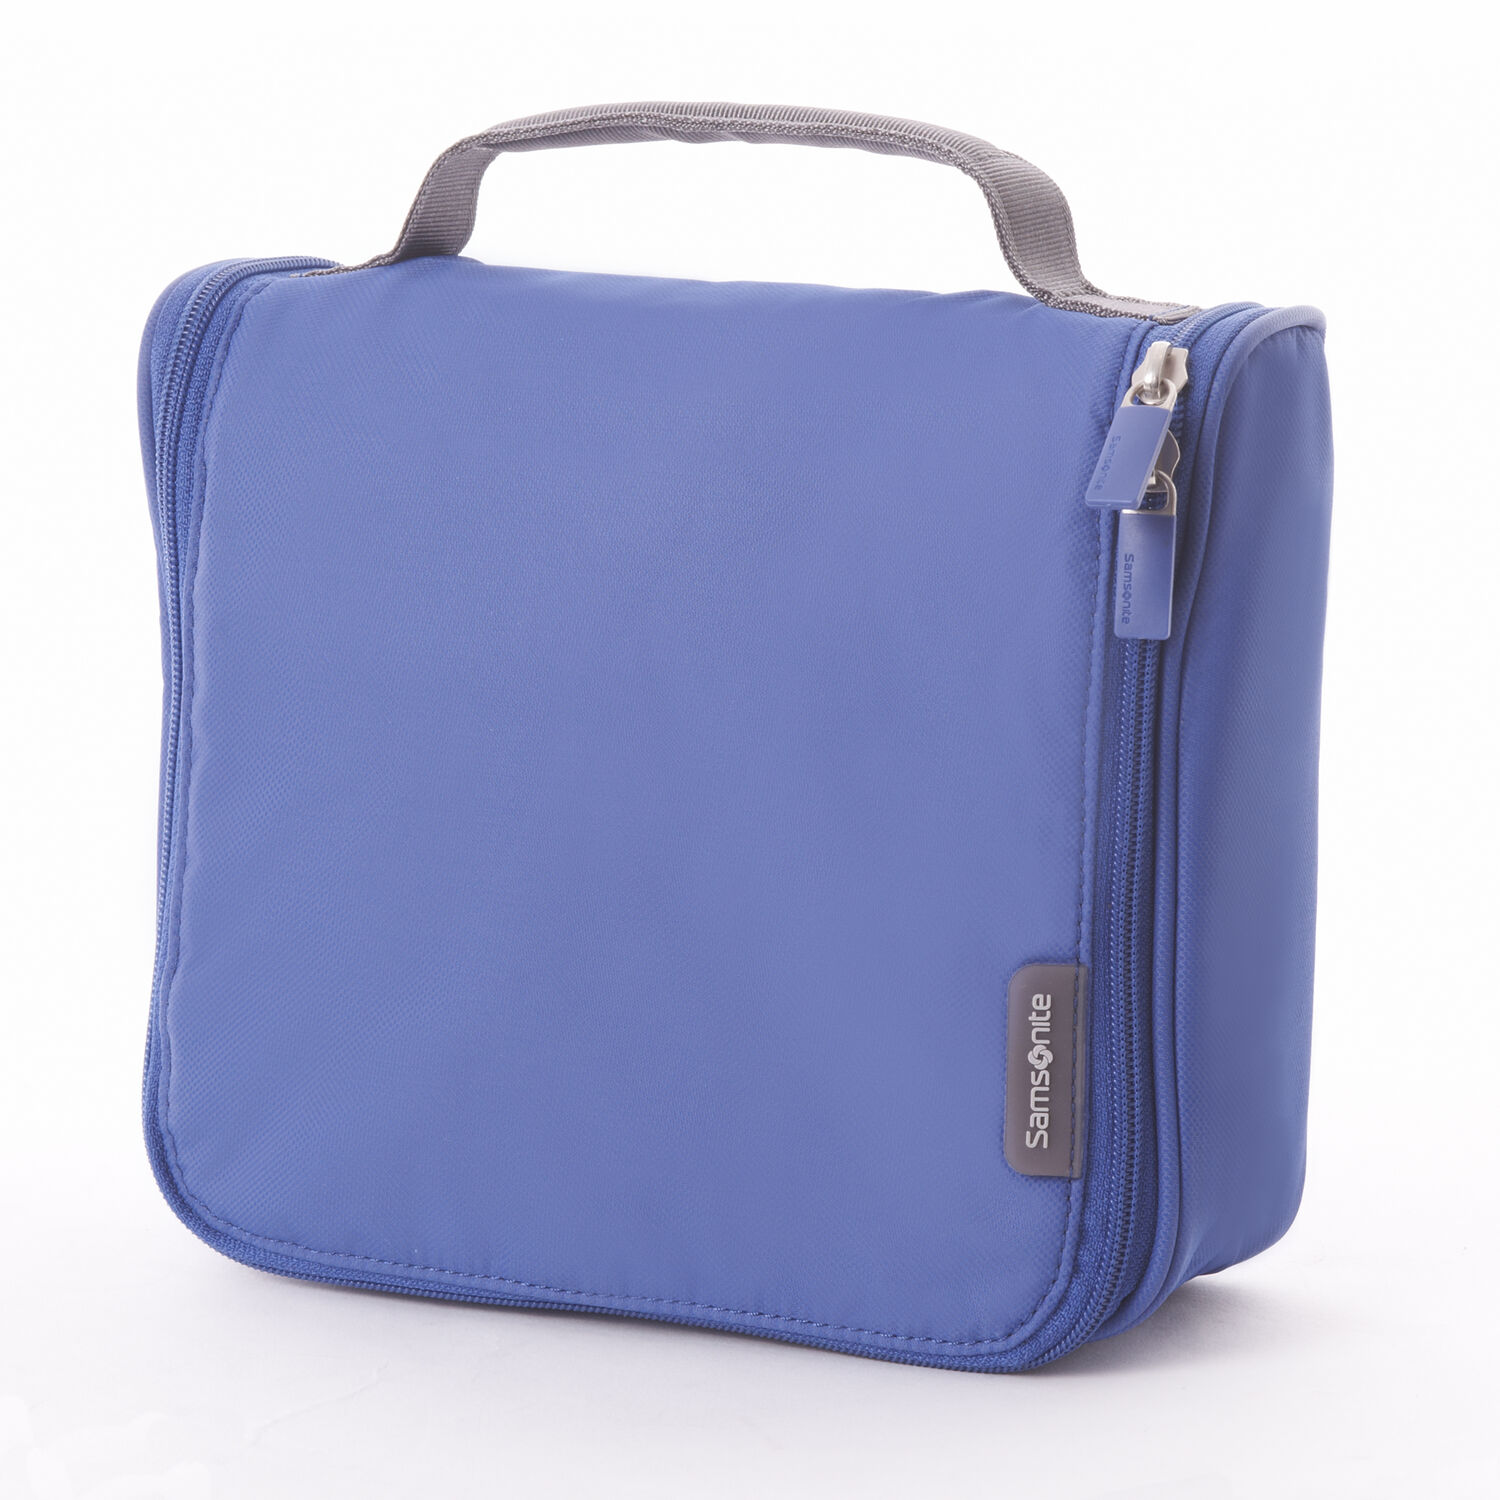 2622d629f5 Samsonite CAN Accessories Hanging Toiletry Kit in the color Blue.